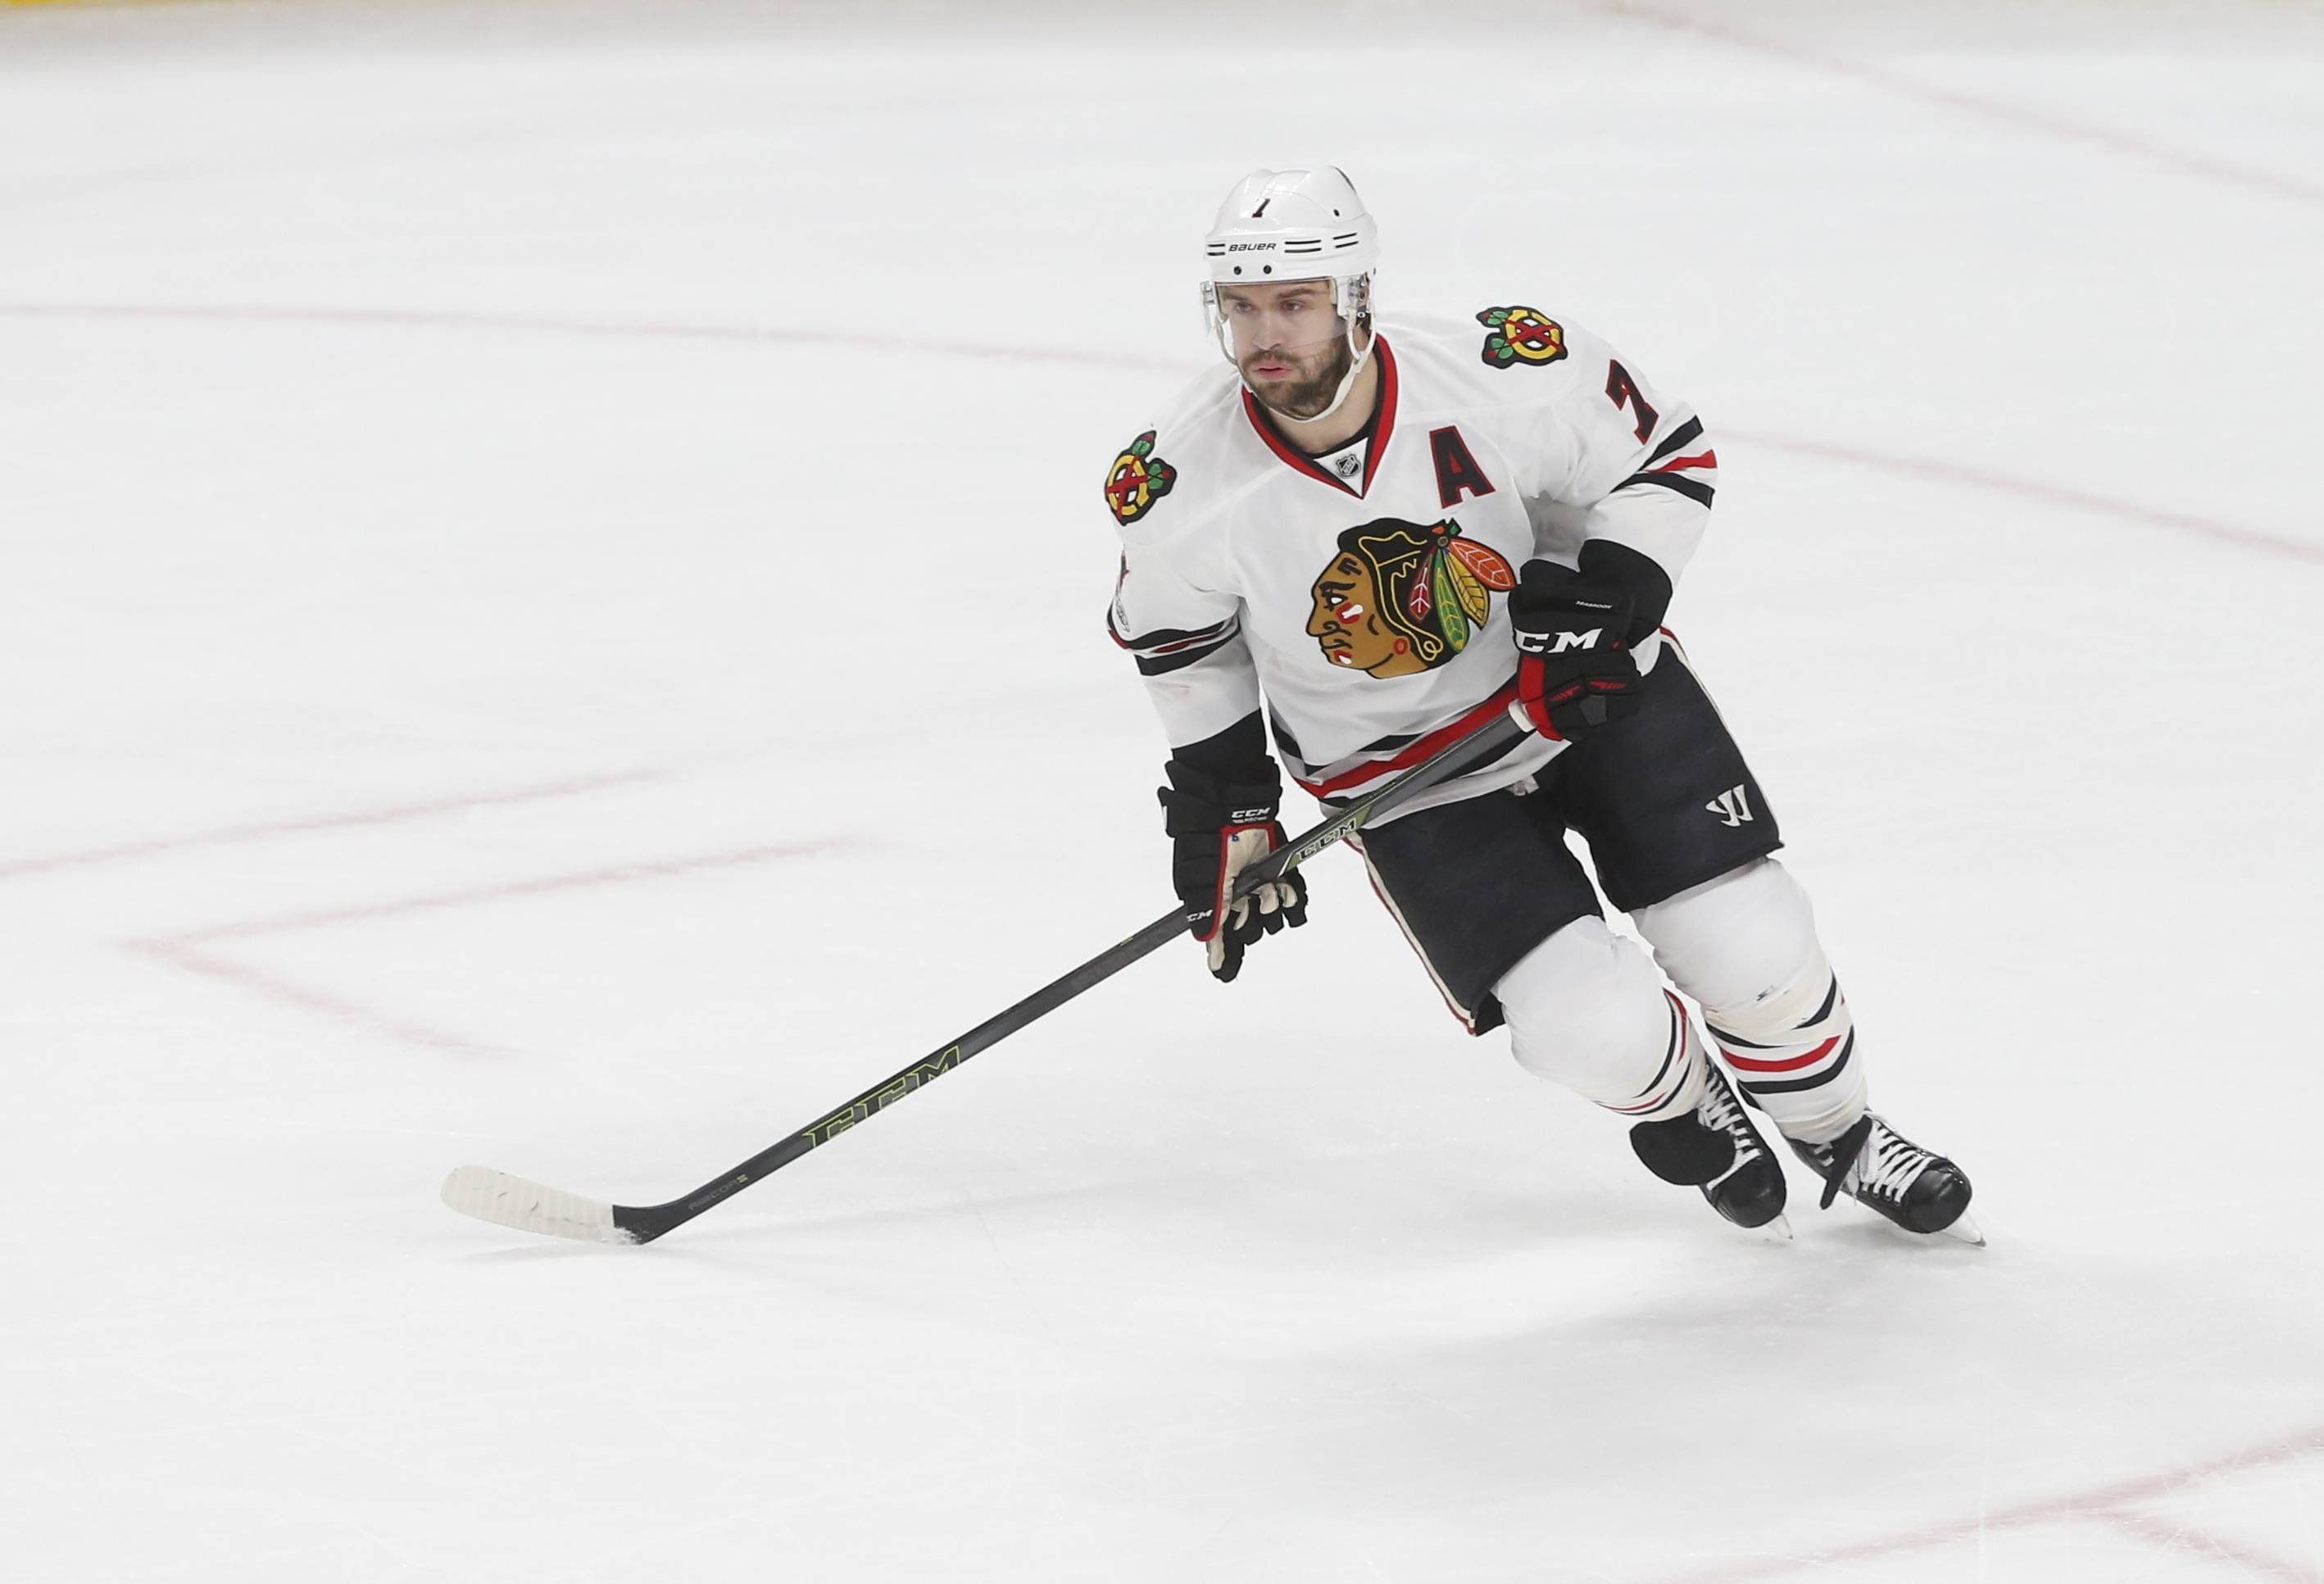 With just 1 goal and 10 assists in 41 games, the Chicago Blackhawks have decided to sit veteran defenseman Brent Seabrook when they play at Ottawa tonight.